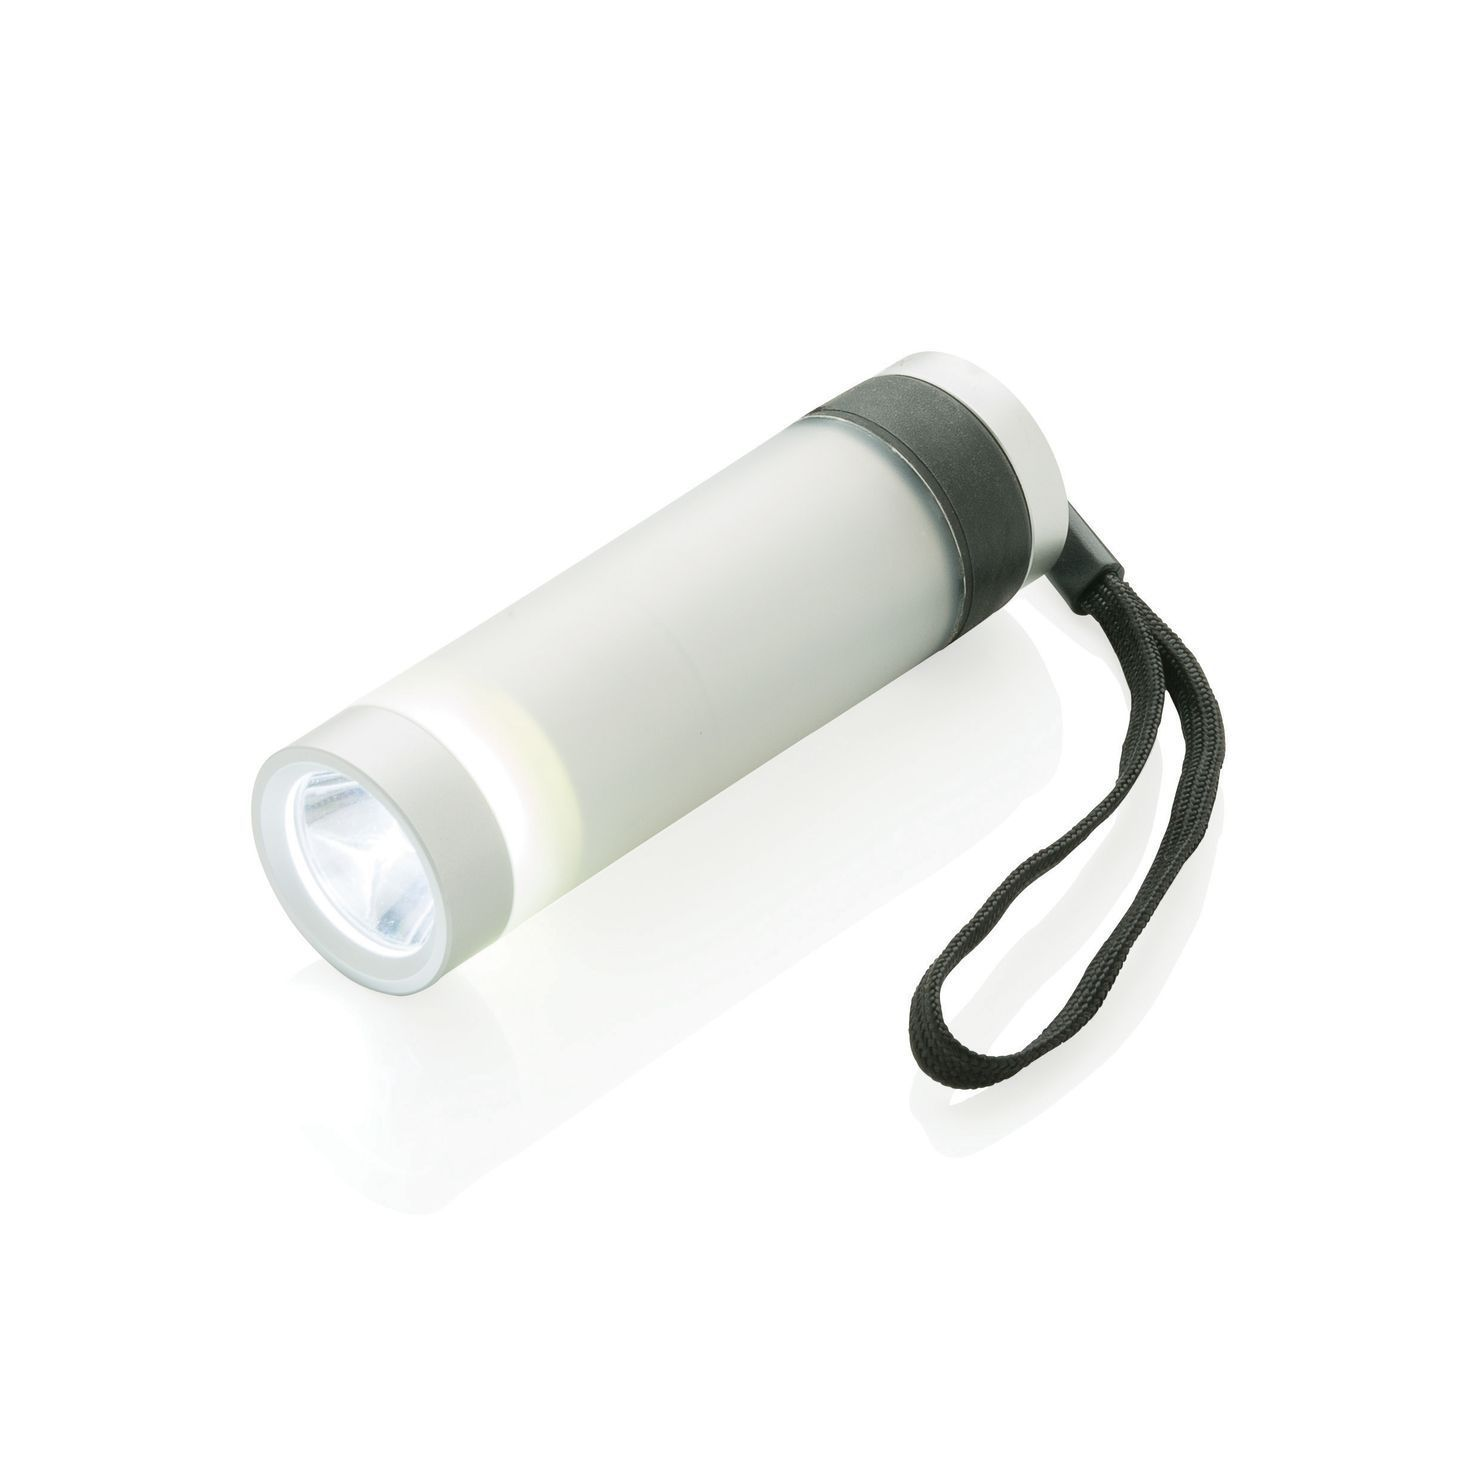 Zilvere LED zaklamp | 2-delige